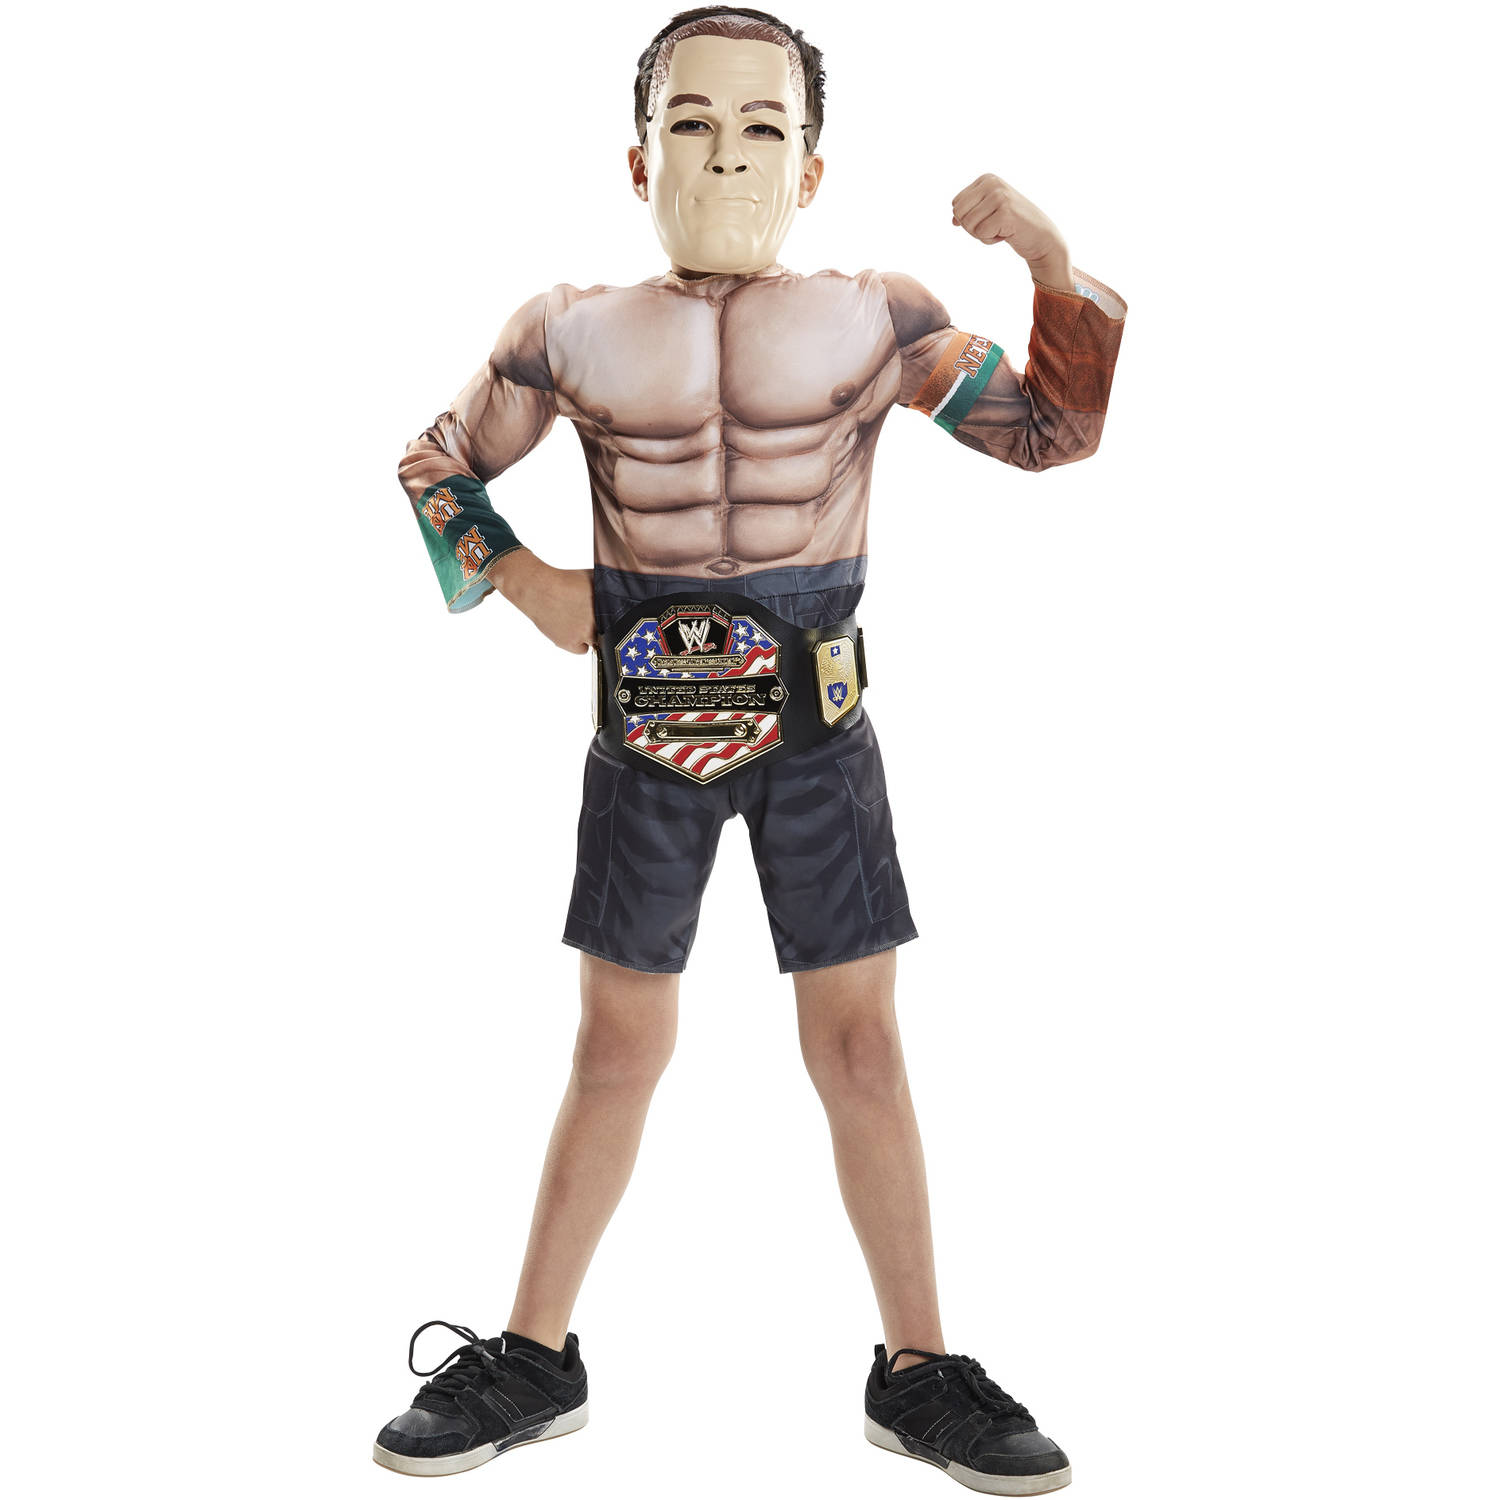 WWE Dress Up Deluxe Costumes, John Cena